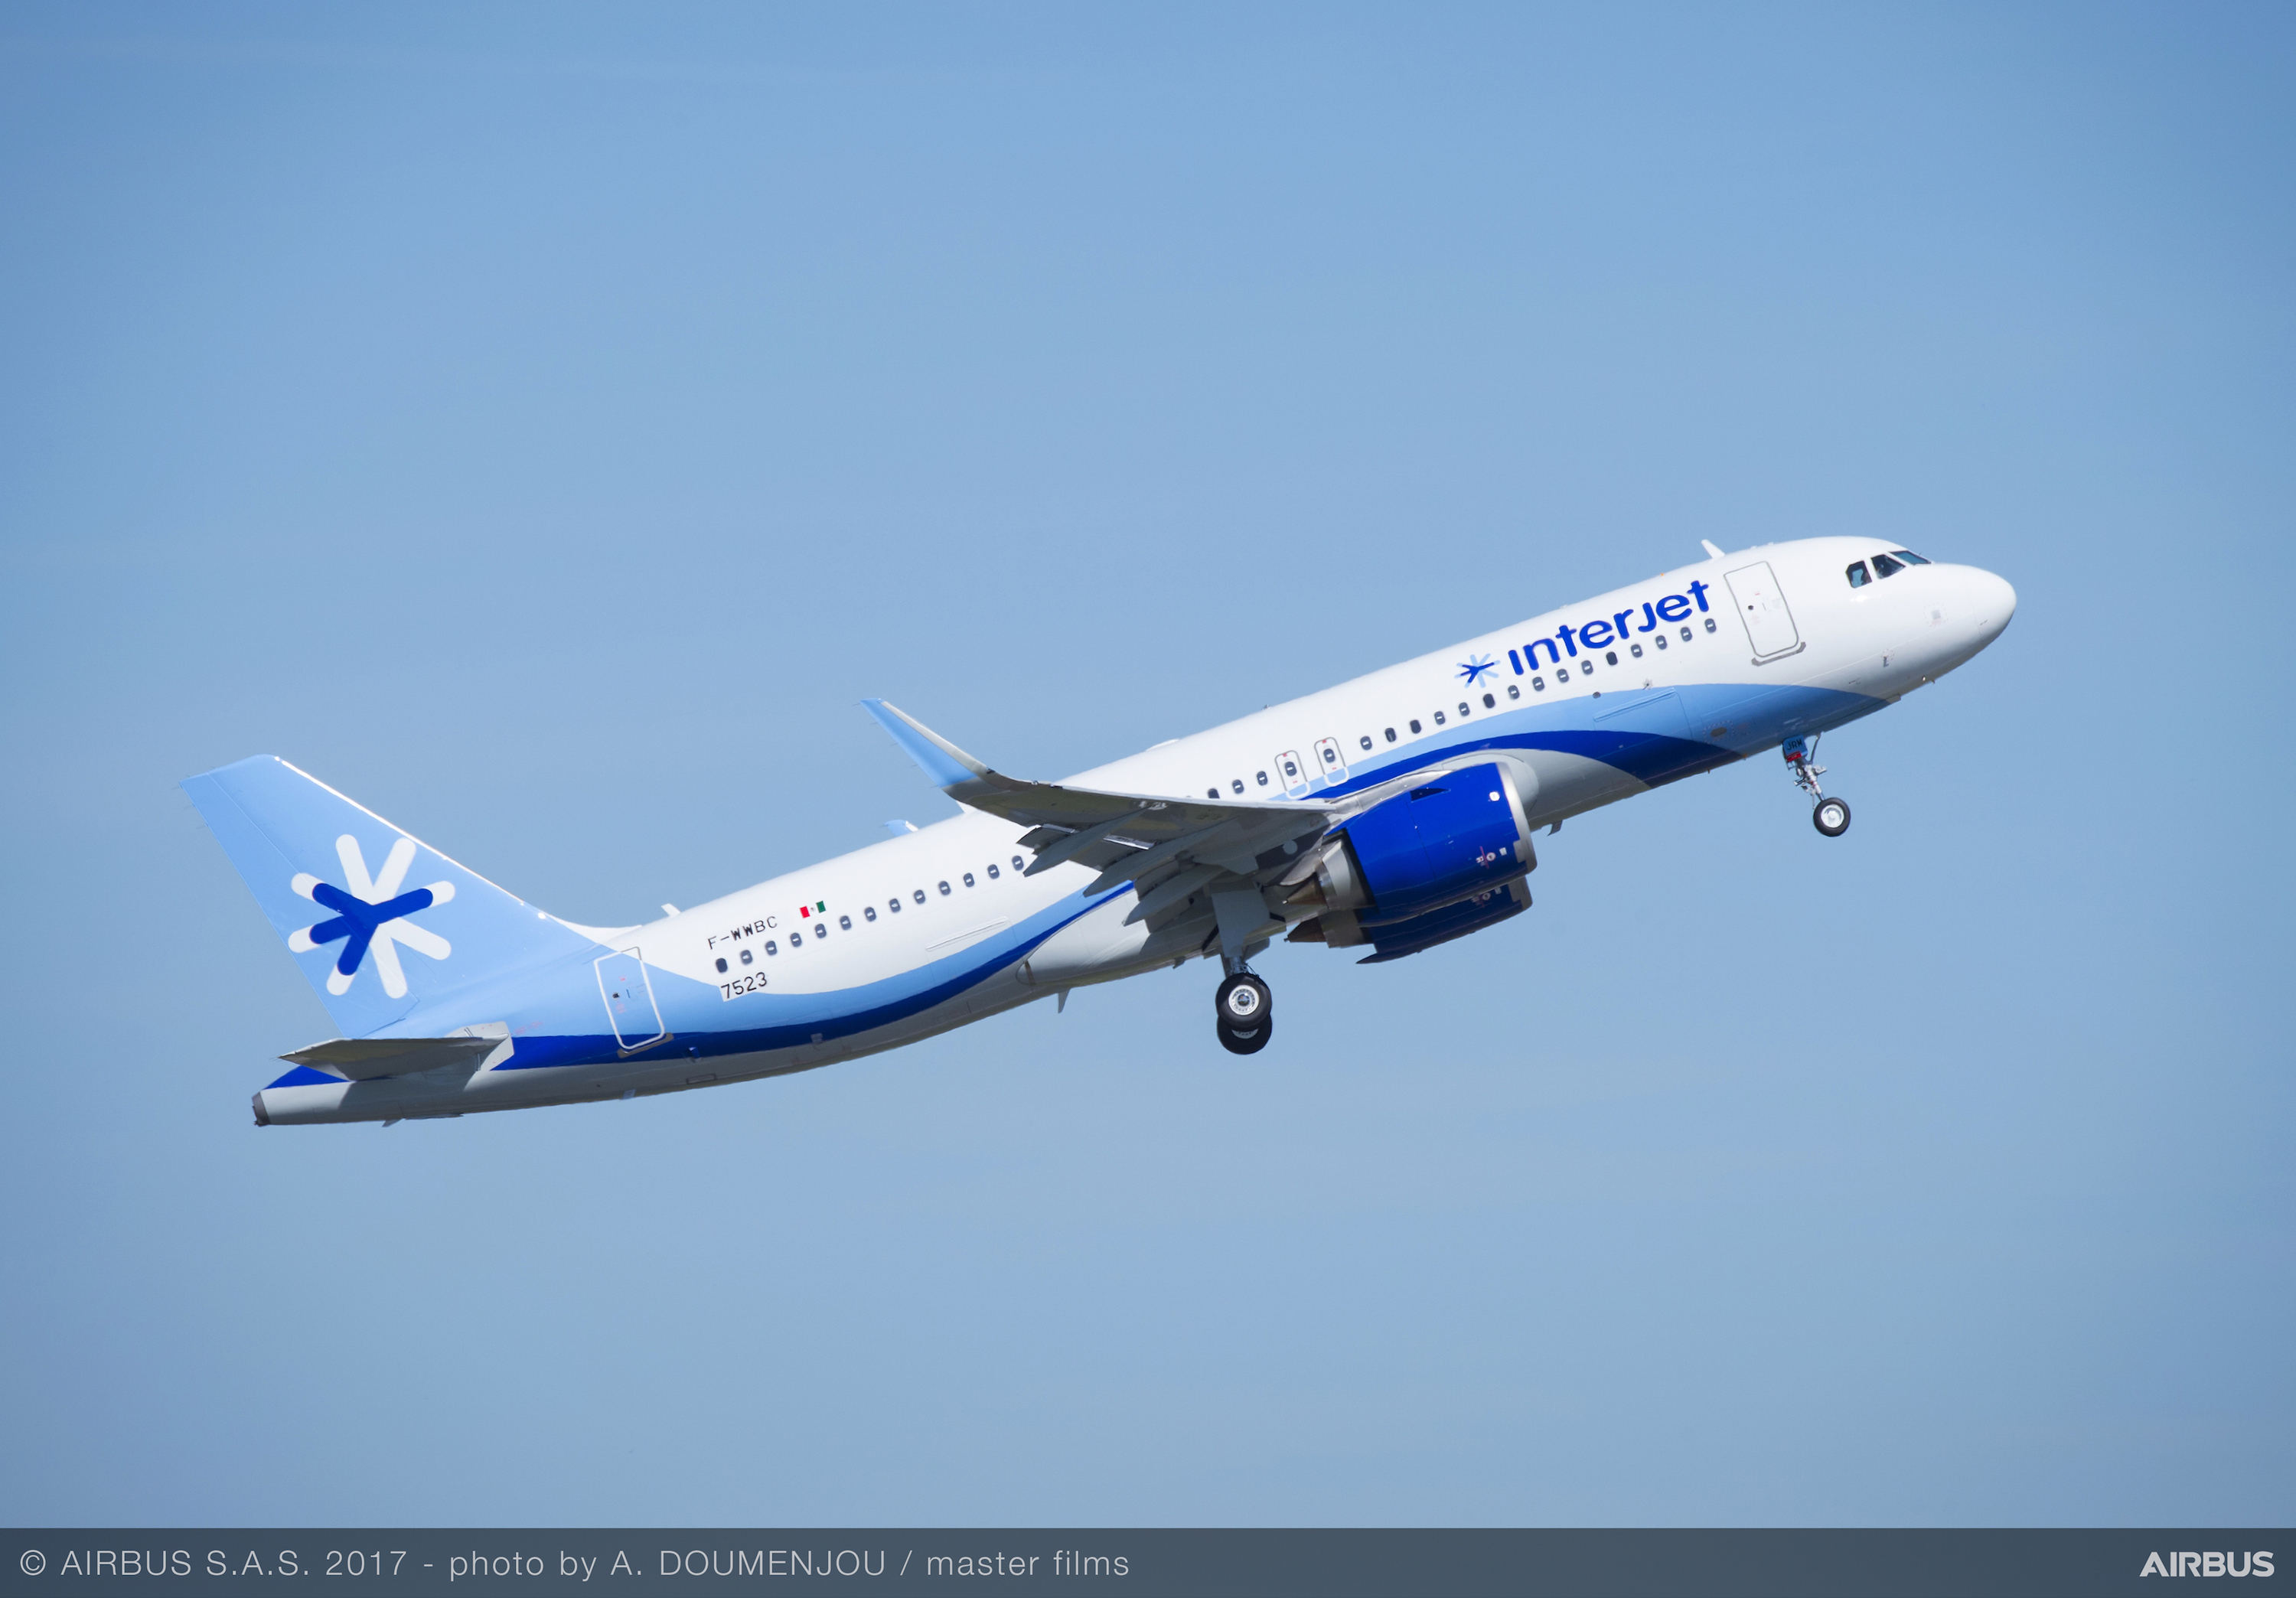 interjet takes delivery of first airbus a320neo